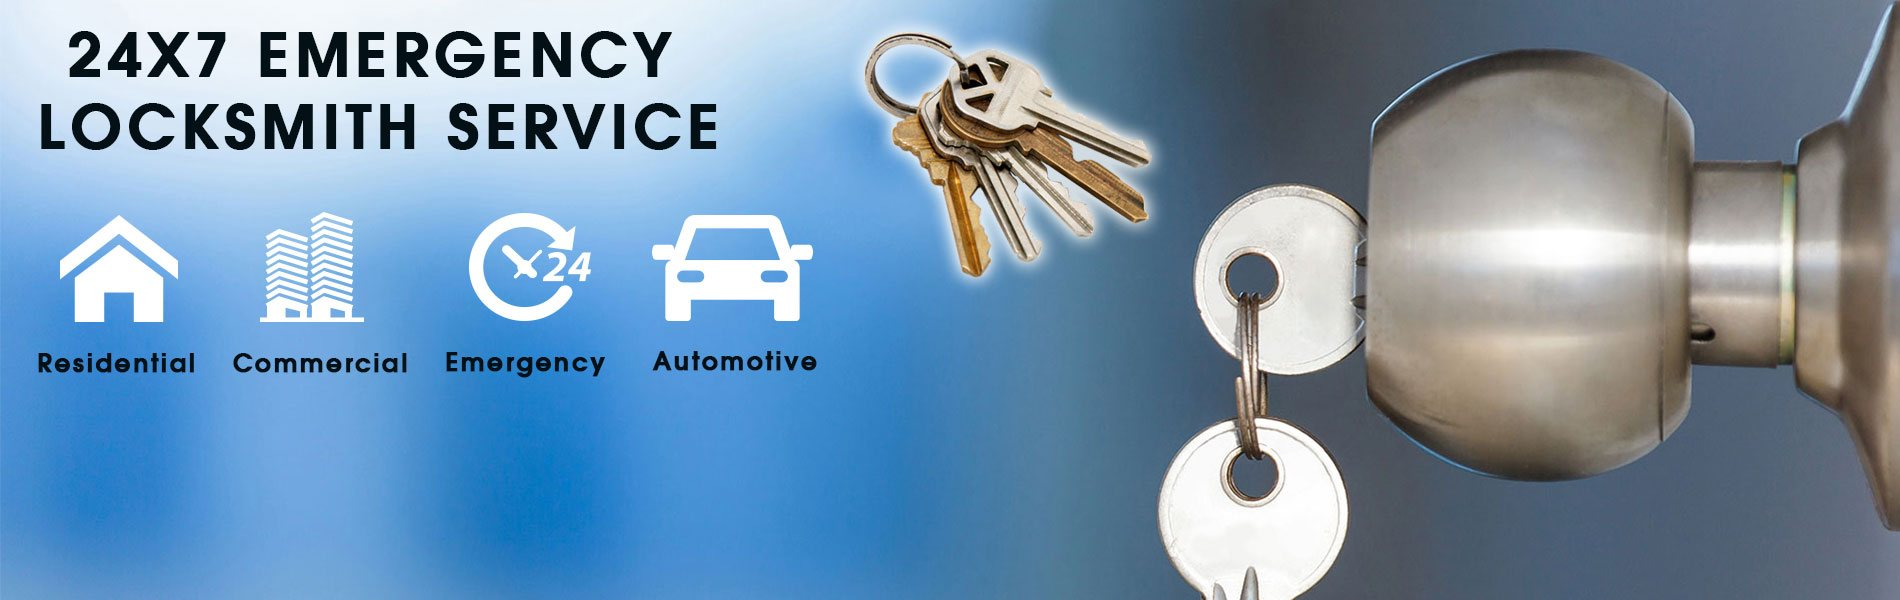 Golden Locksmith Services Atlanta, GA 404-479-6181